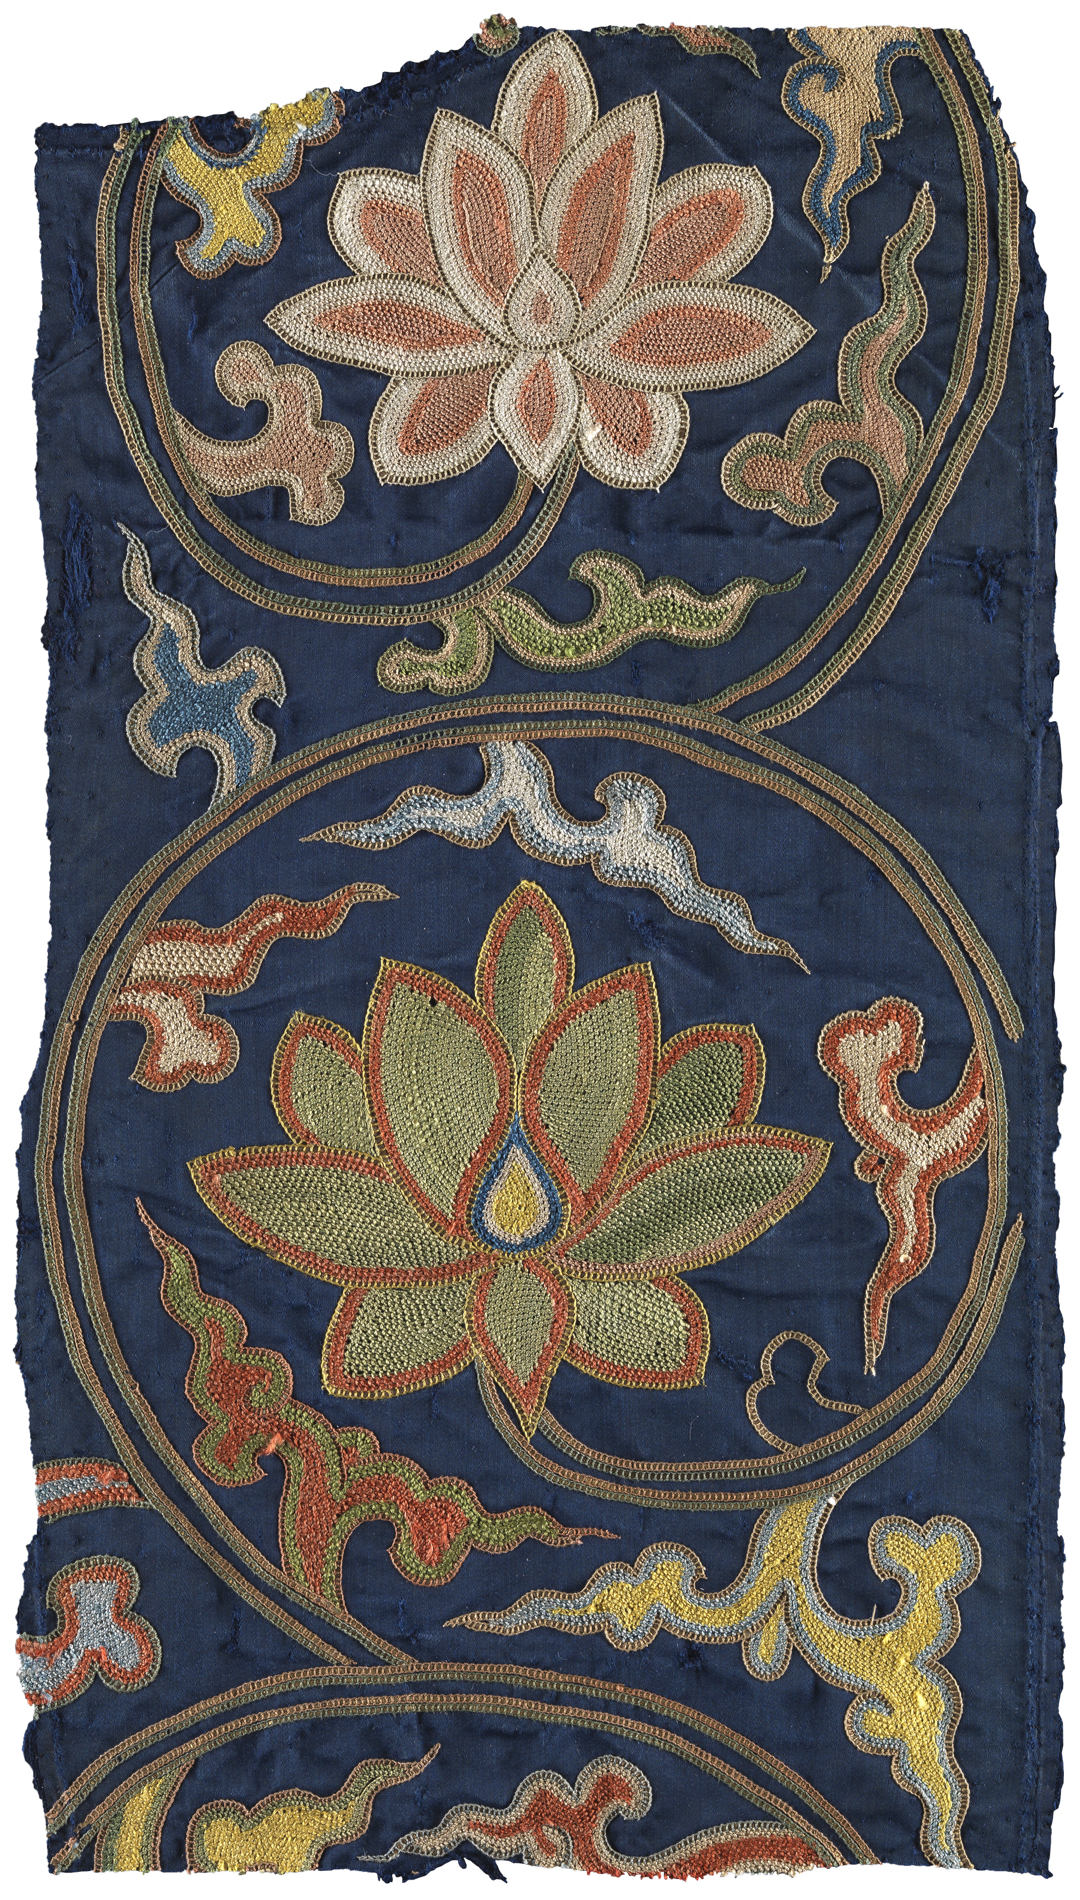 Navy textile with embroidered lotus flowers